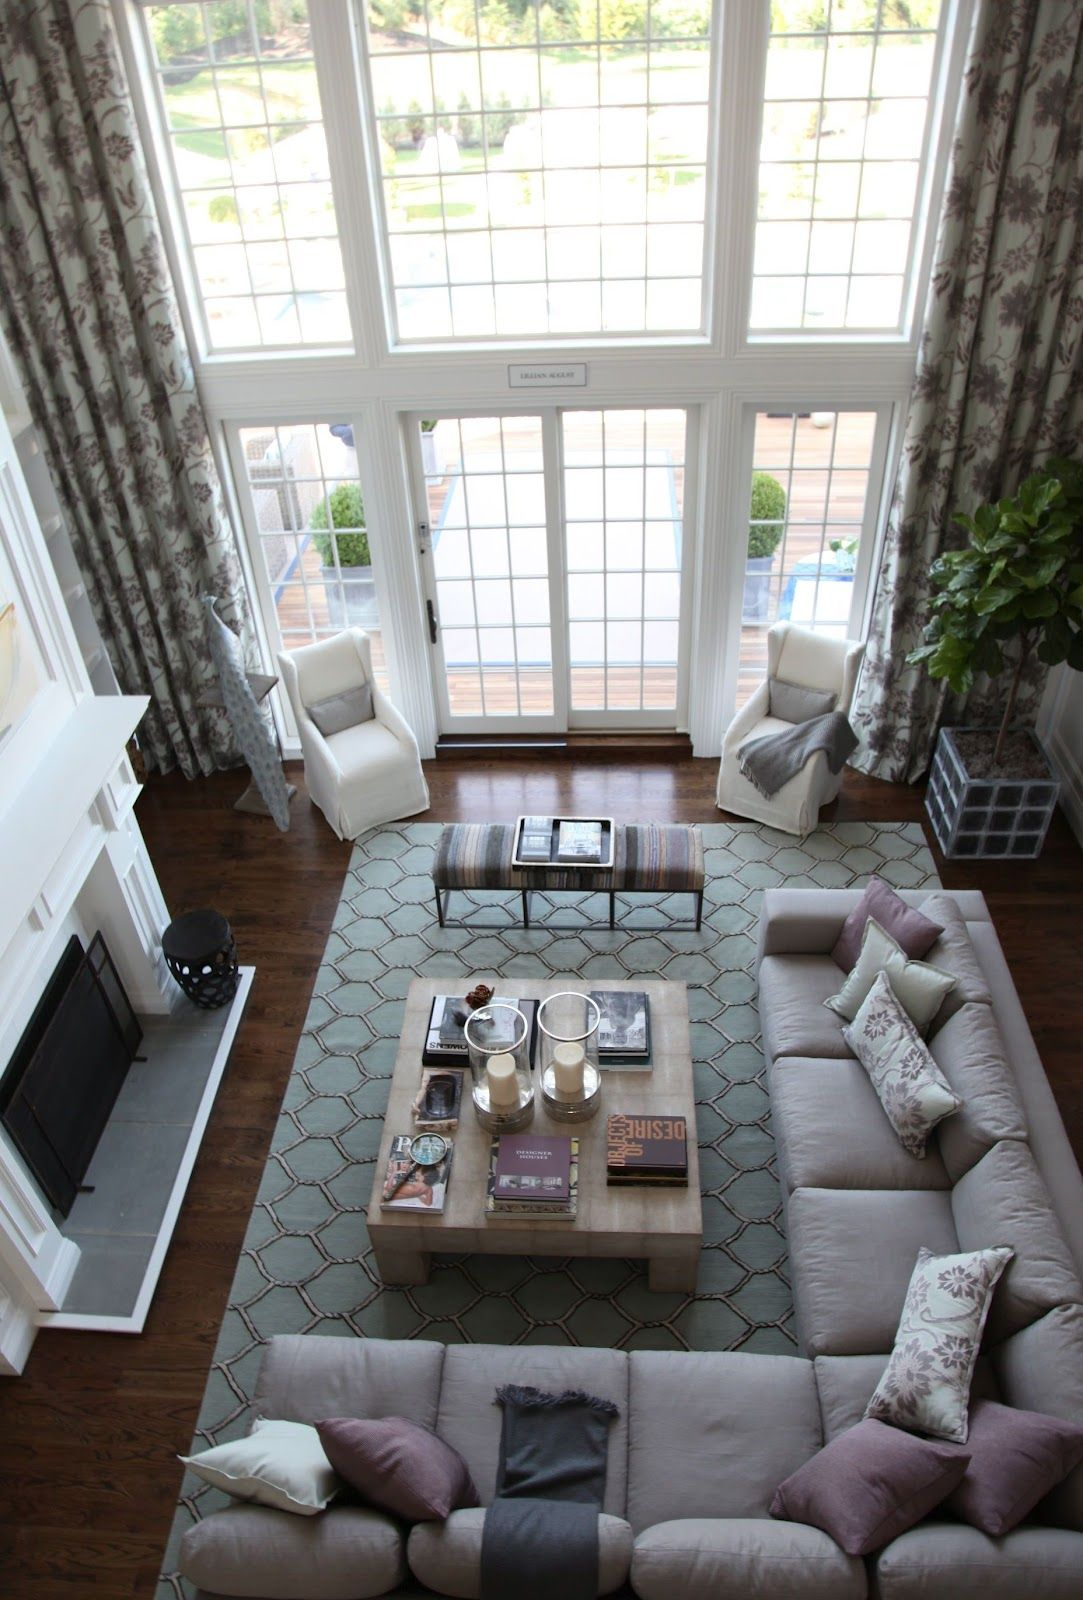 No all    wander are lo also design guide how to style  sectional sofa interiors pinterest rh br